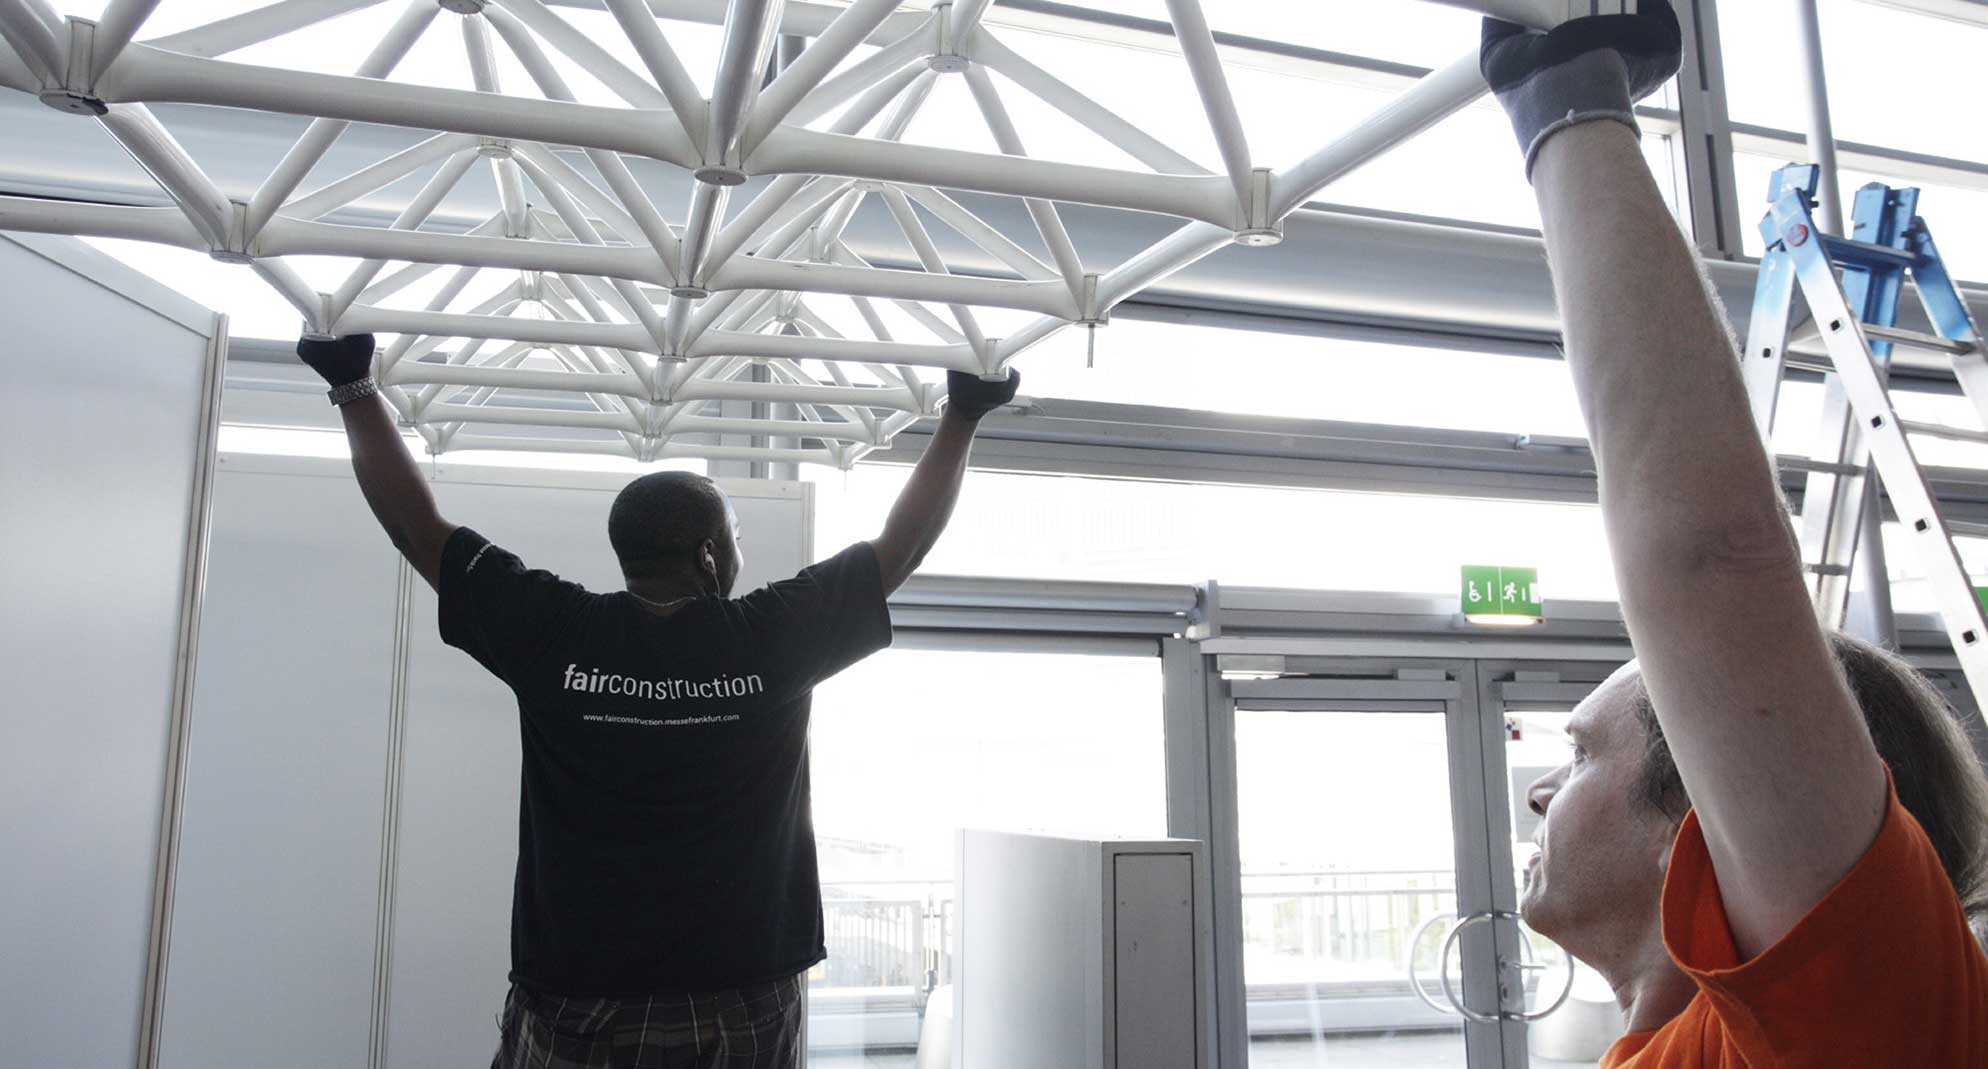 Set-up and dismantling assistants at the Messe Frankfurt